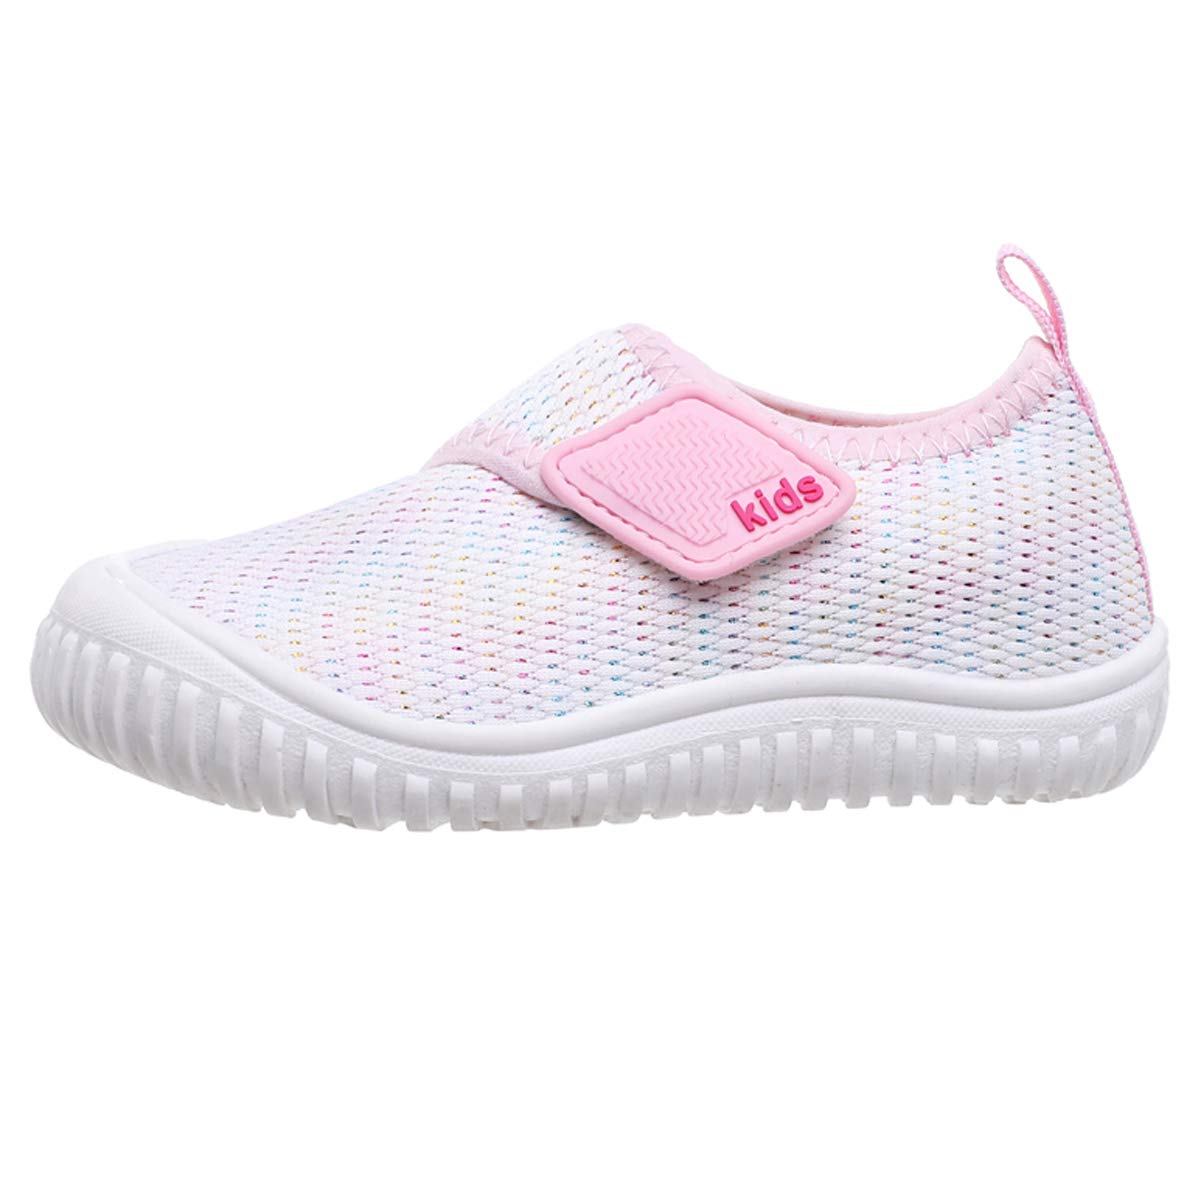 DADAZE Boys Girls Sneakers Toddler Shoes Kids Anti-Slip Net Shoes,Unisex Babys Summer Trainers Running Shoes